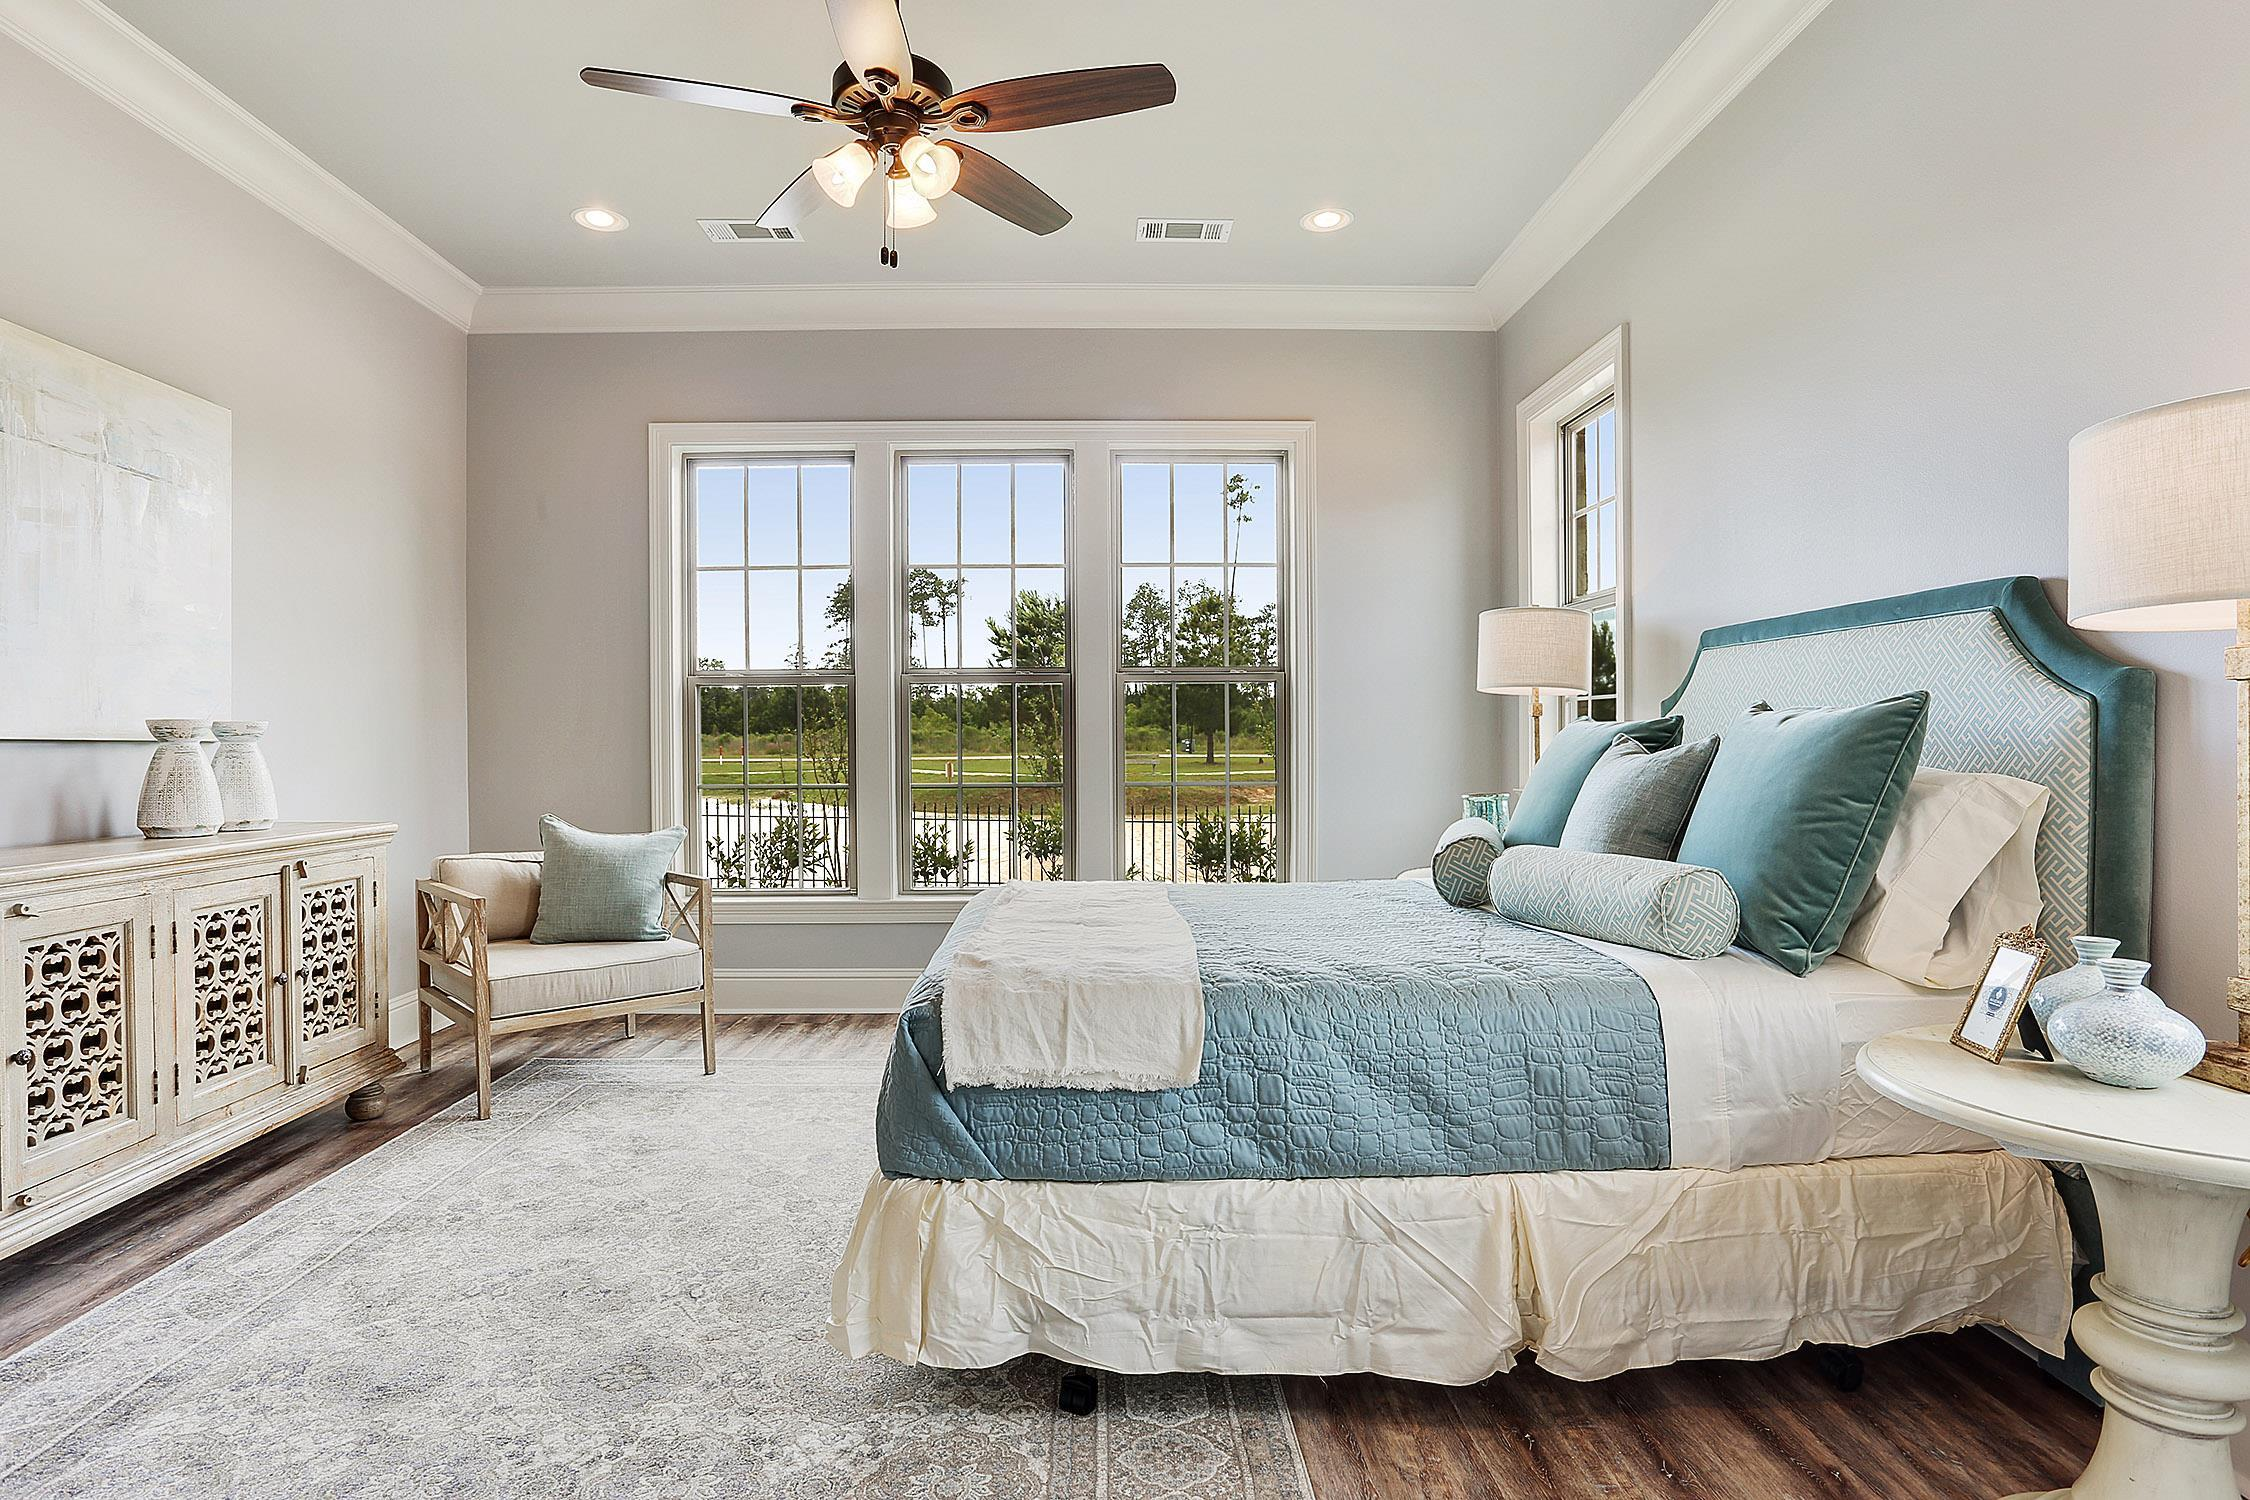 Bedroom featured in the Julianne By Highland Homes in New Orleans, LA